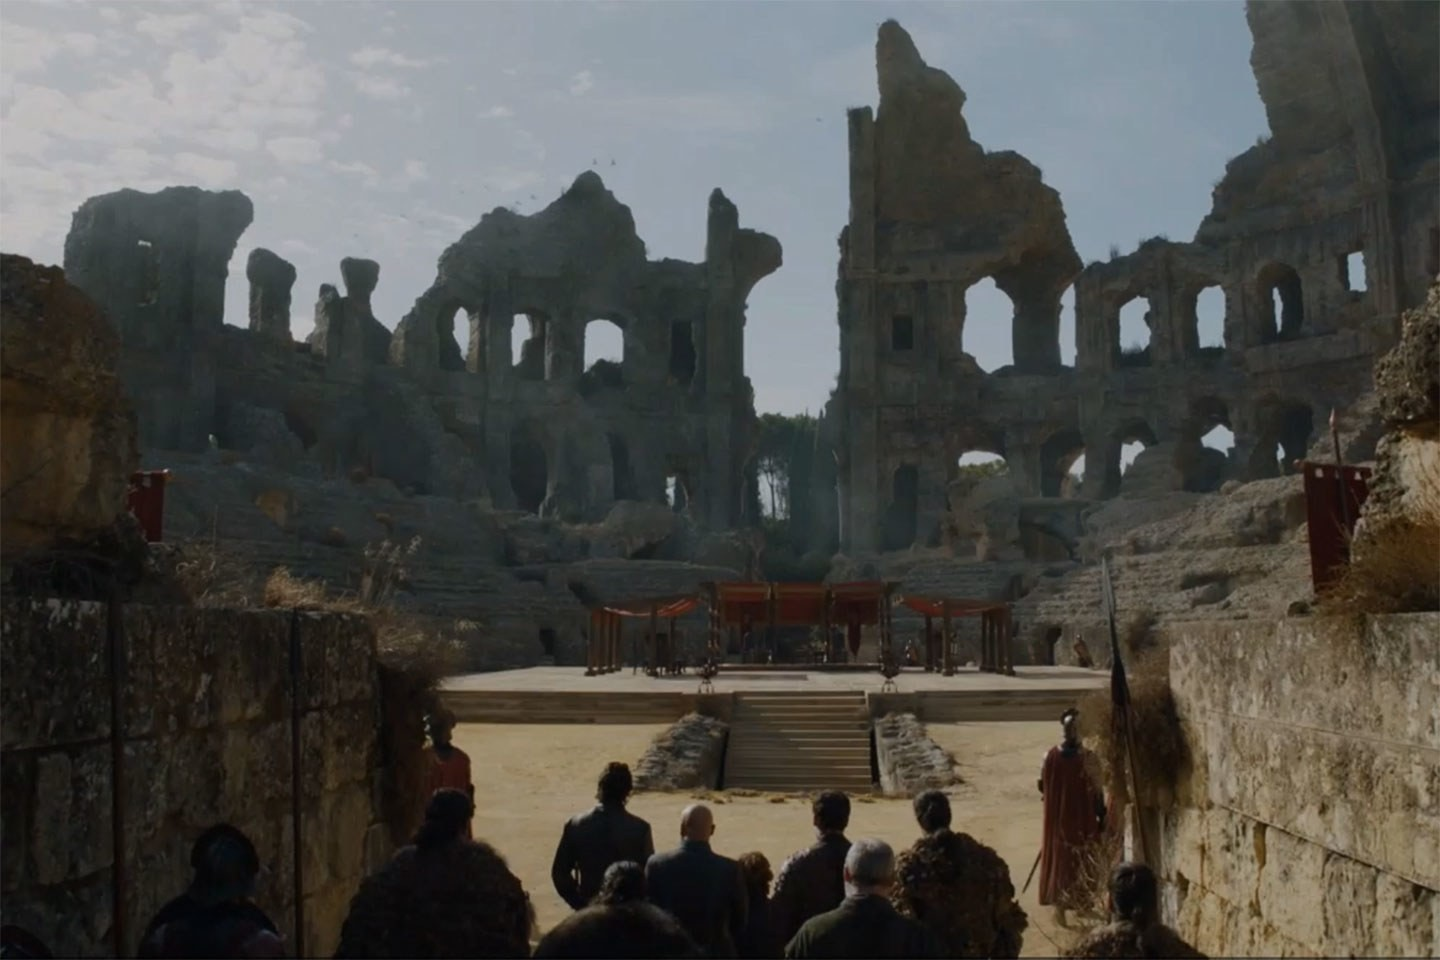 screengrab of how the dome looks in the episode, if i find a higher res image i'll put it up!